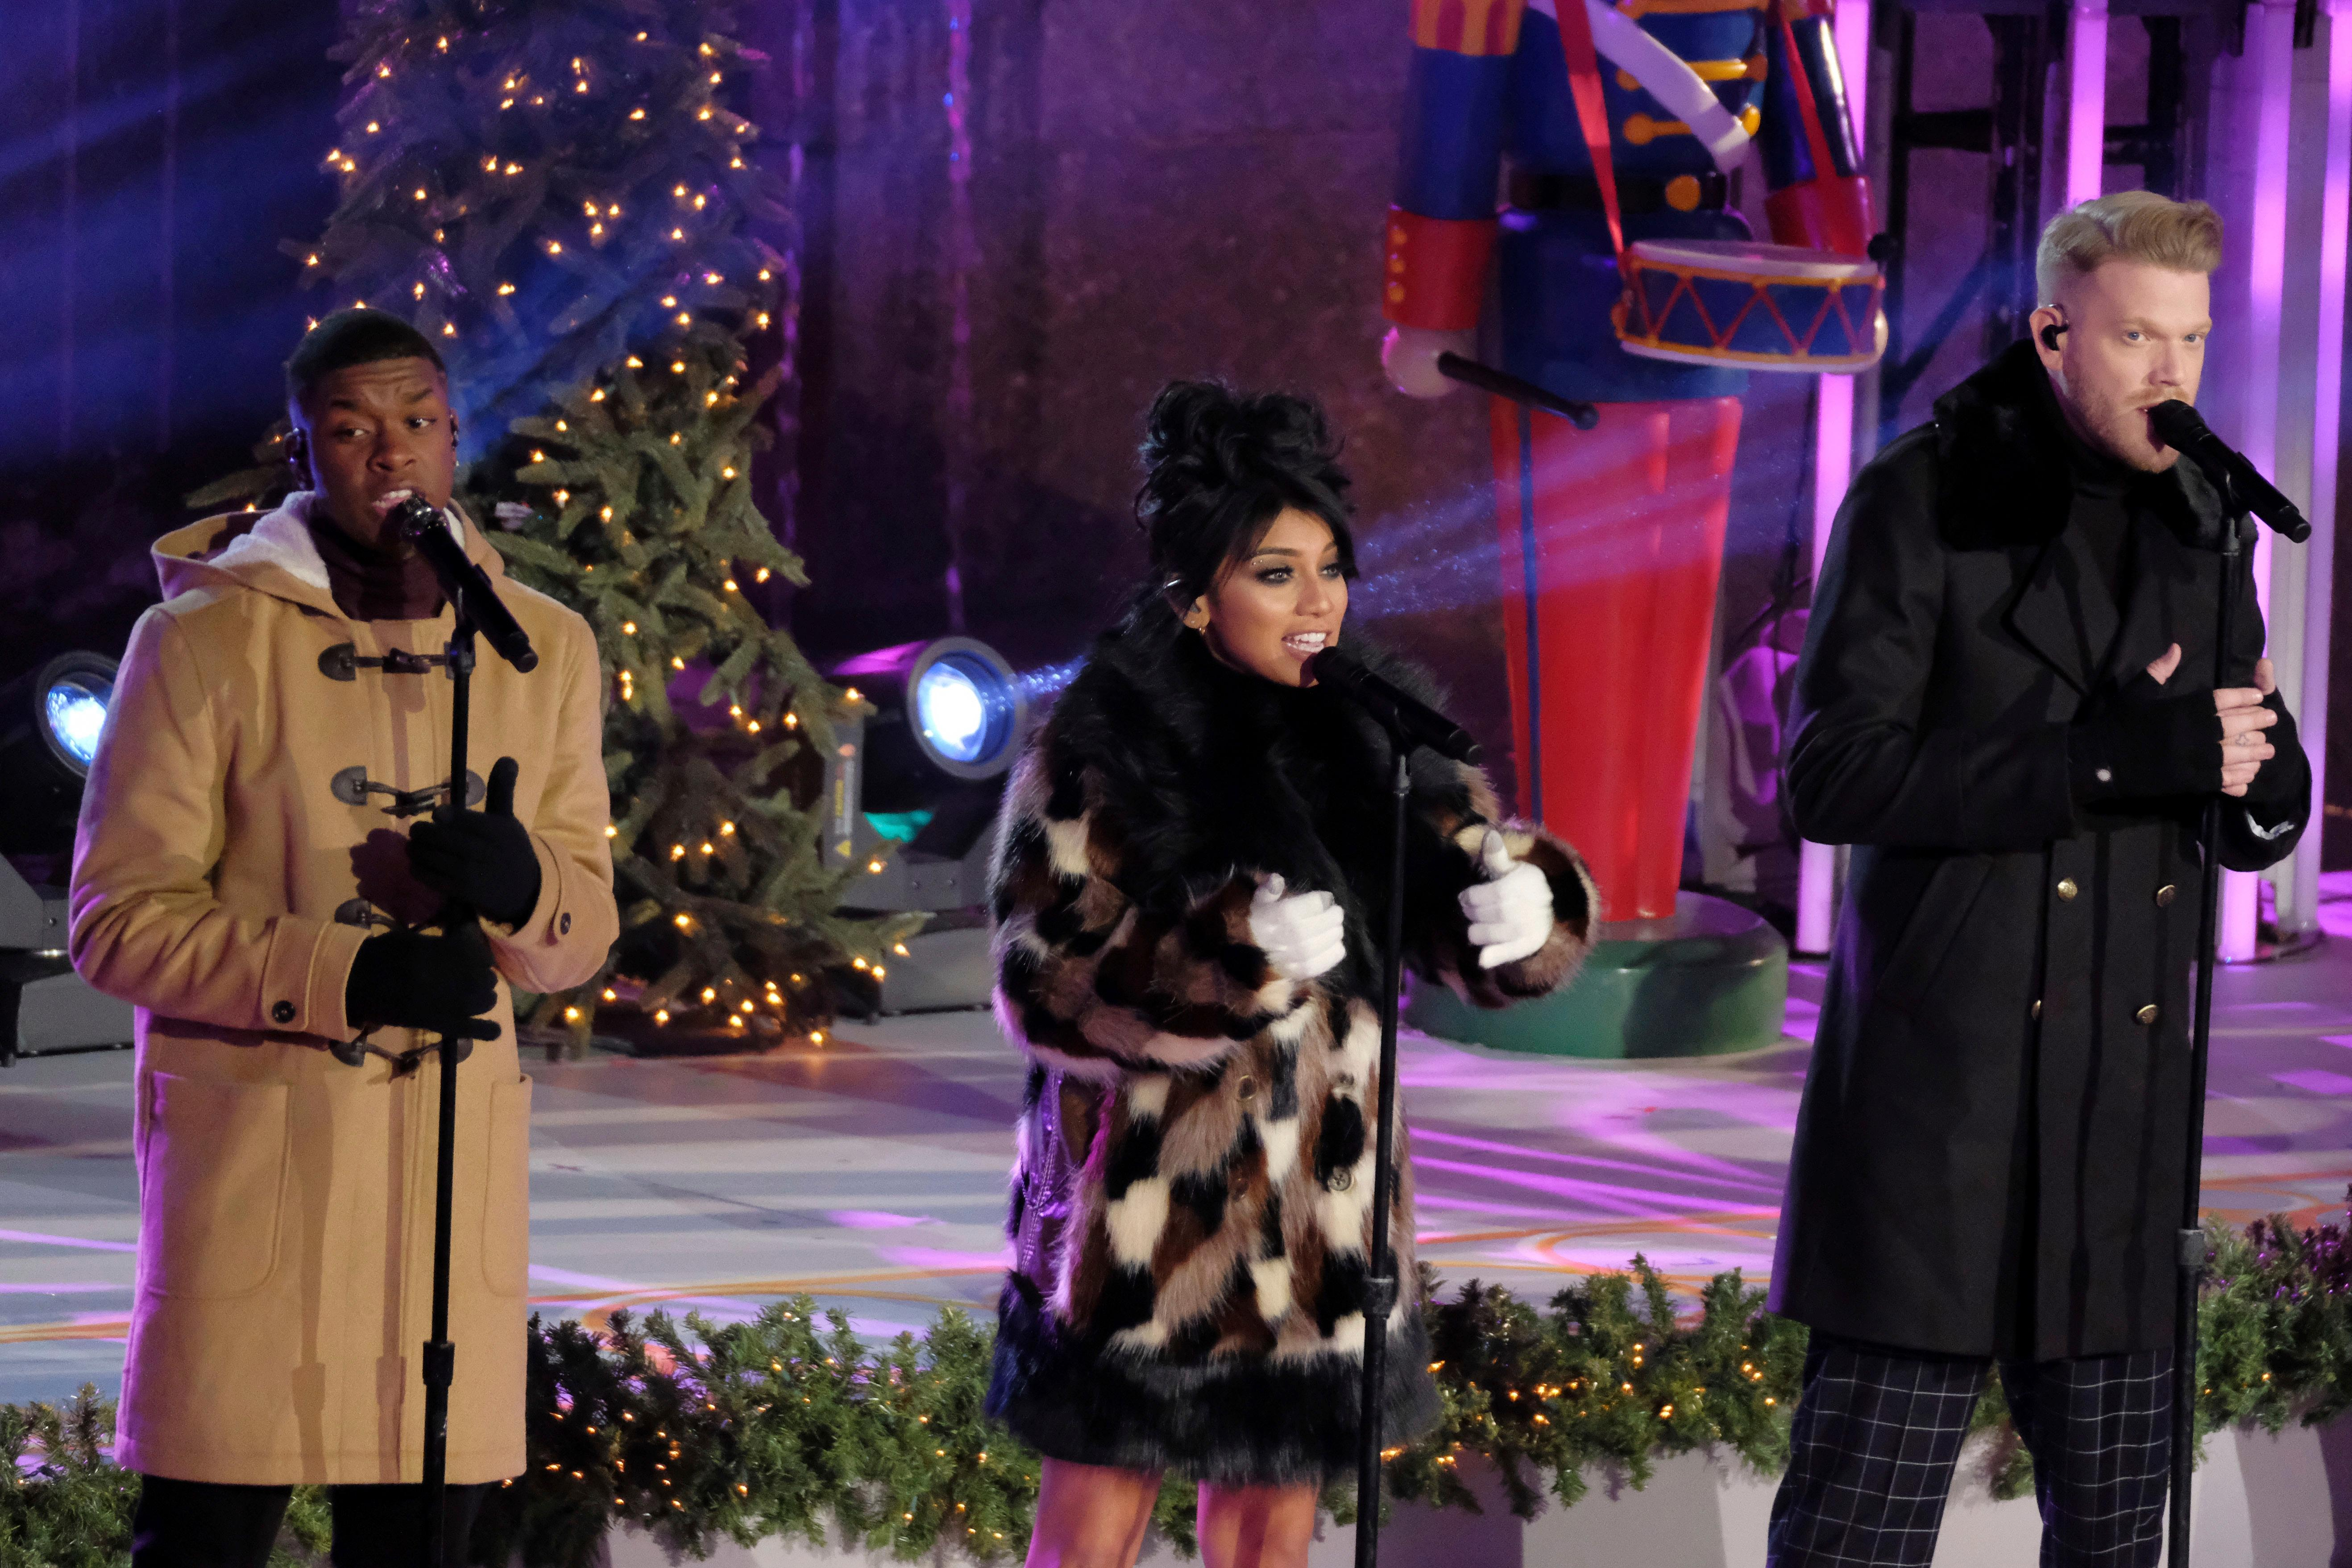 Christmas Tree Lighting Pentatonix Members, From Left, Matt Sallee, Kirstin